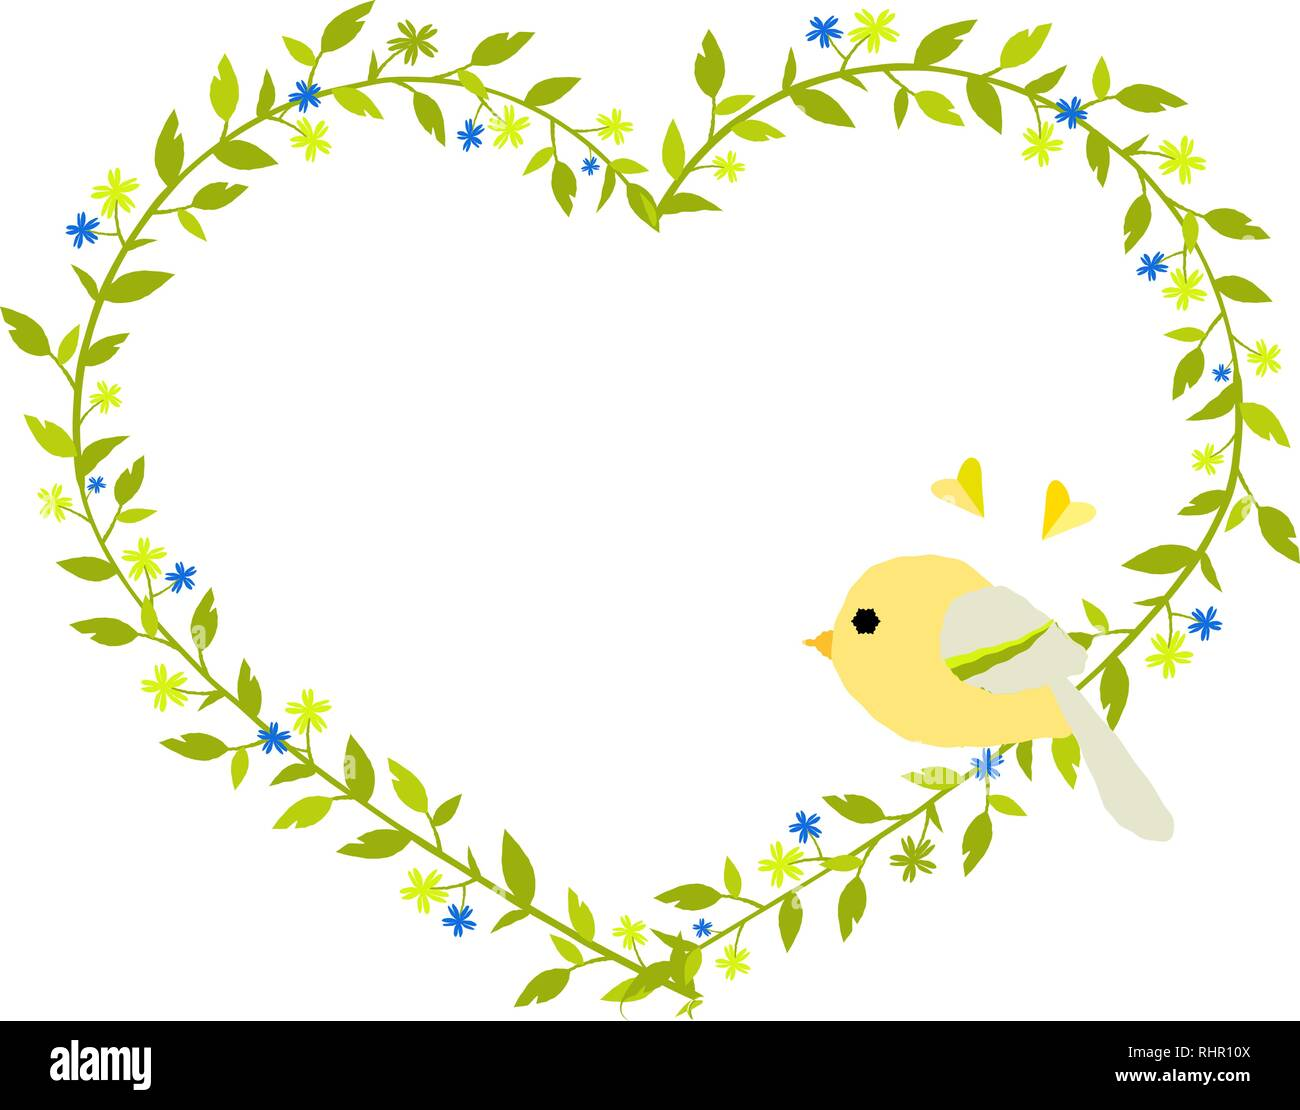 Gentle green heart-shaped wreath with a yellow bird. Eps 10 - Stock Vector